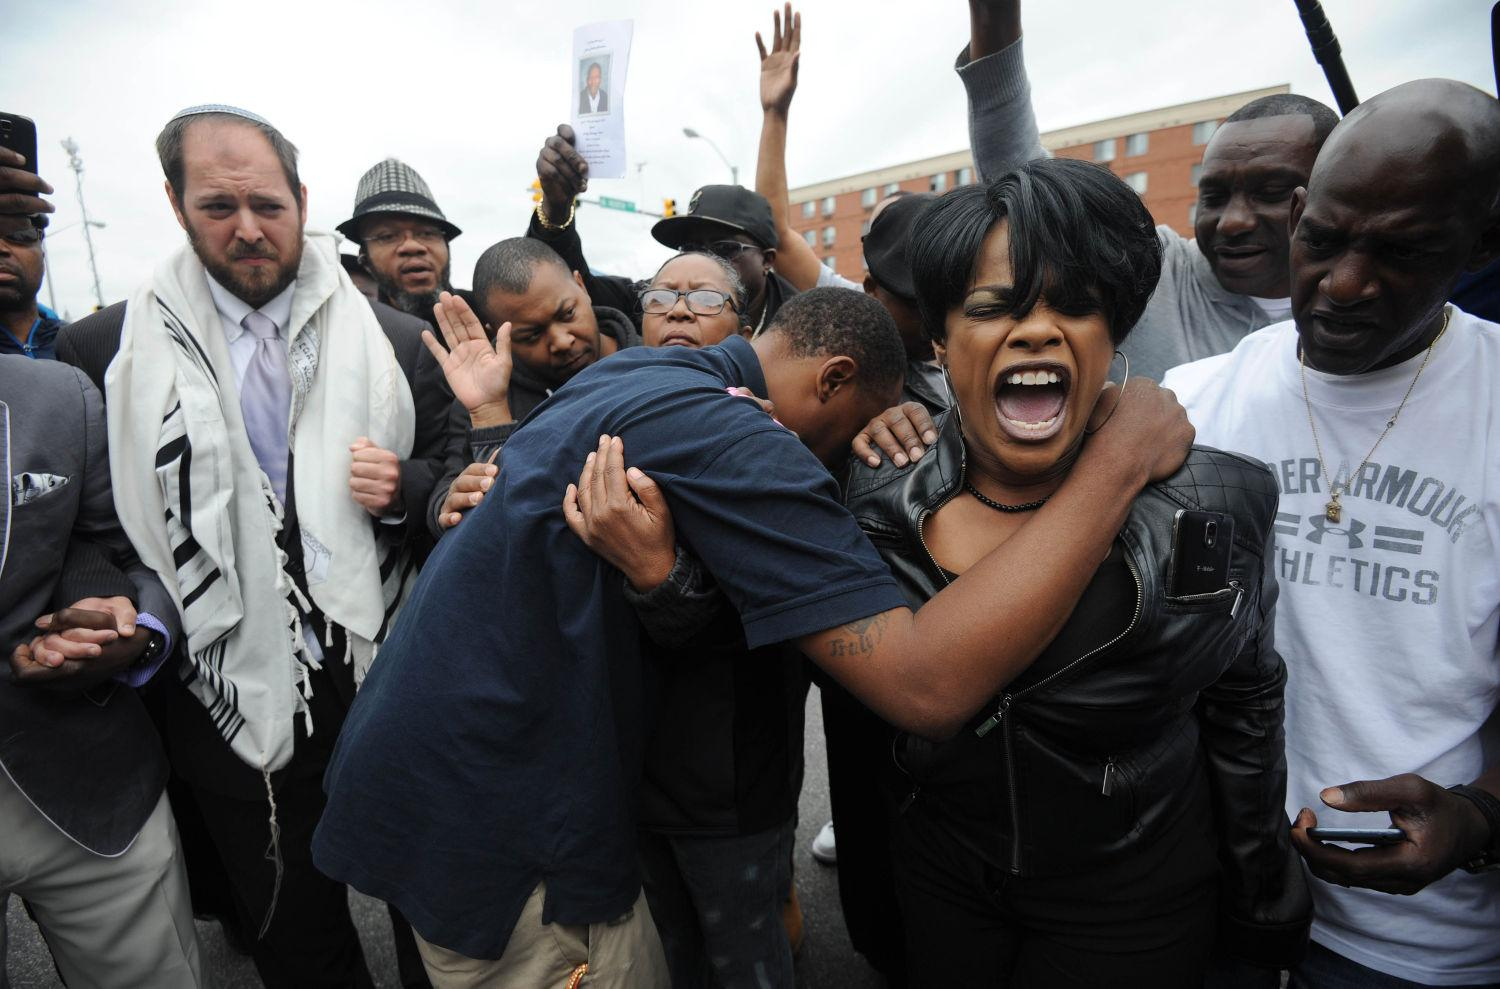 Rev. Pamela Coleman, right, prays with Baltimore residents at the corner of West North Avenue and Pennsylvania Avenue on May 1 after charges were filed against six Baltimore police officers in the death of Freddie Gray in Baltimore, Md. (Kim Hairston/Baltimore Sun/TNS)